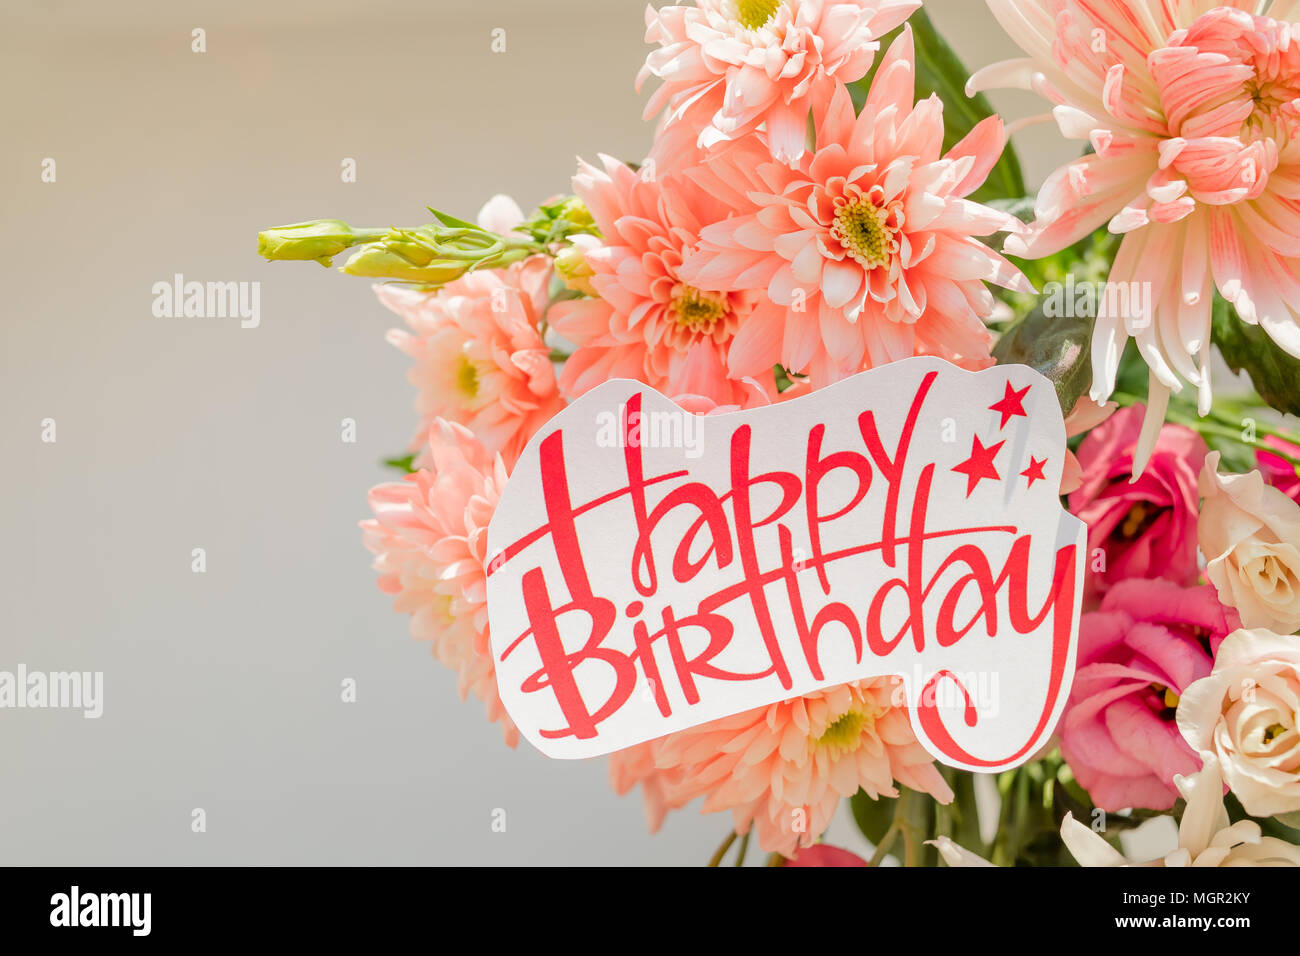 happy birthday card bouquet pink stockfotos happy birthday card bouquet pink bilder alamy. Black Bedroom Furniture Sets. Home Design Ideas